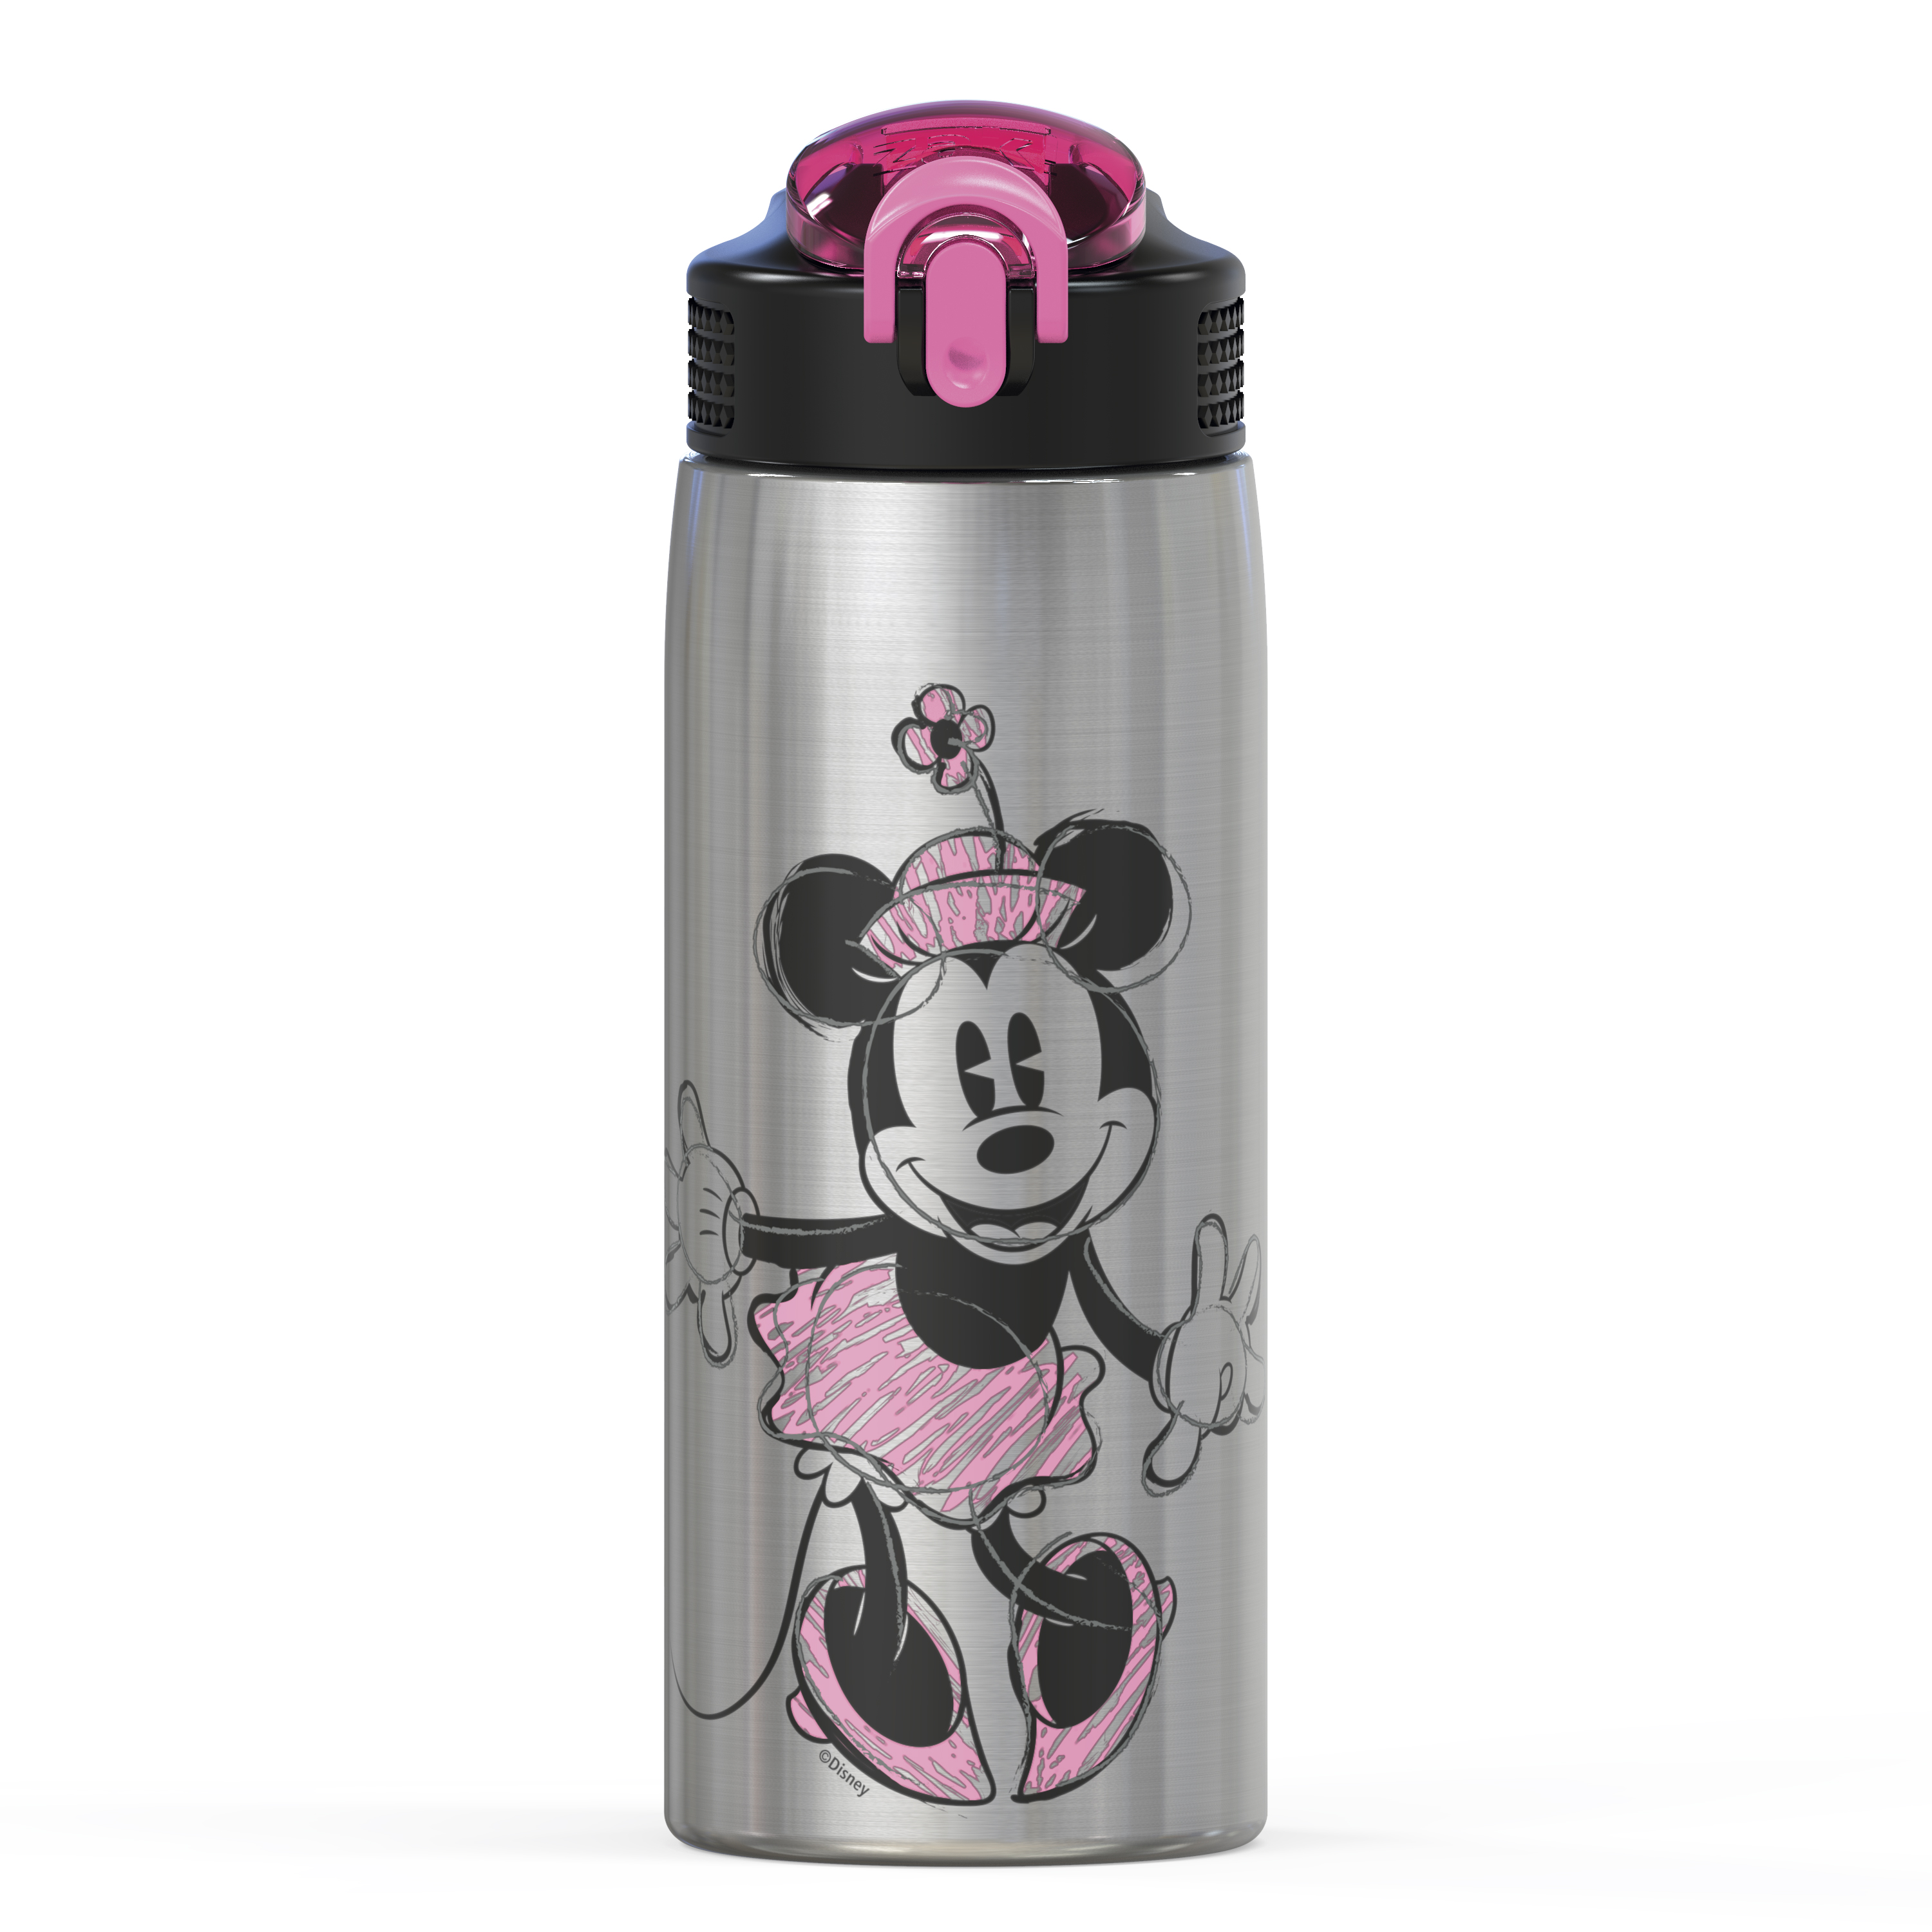 Disney 27 ounce Water Bottle, Minnie Mouse slideshow image 1